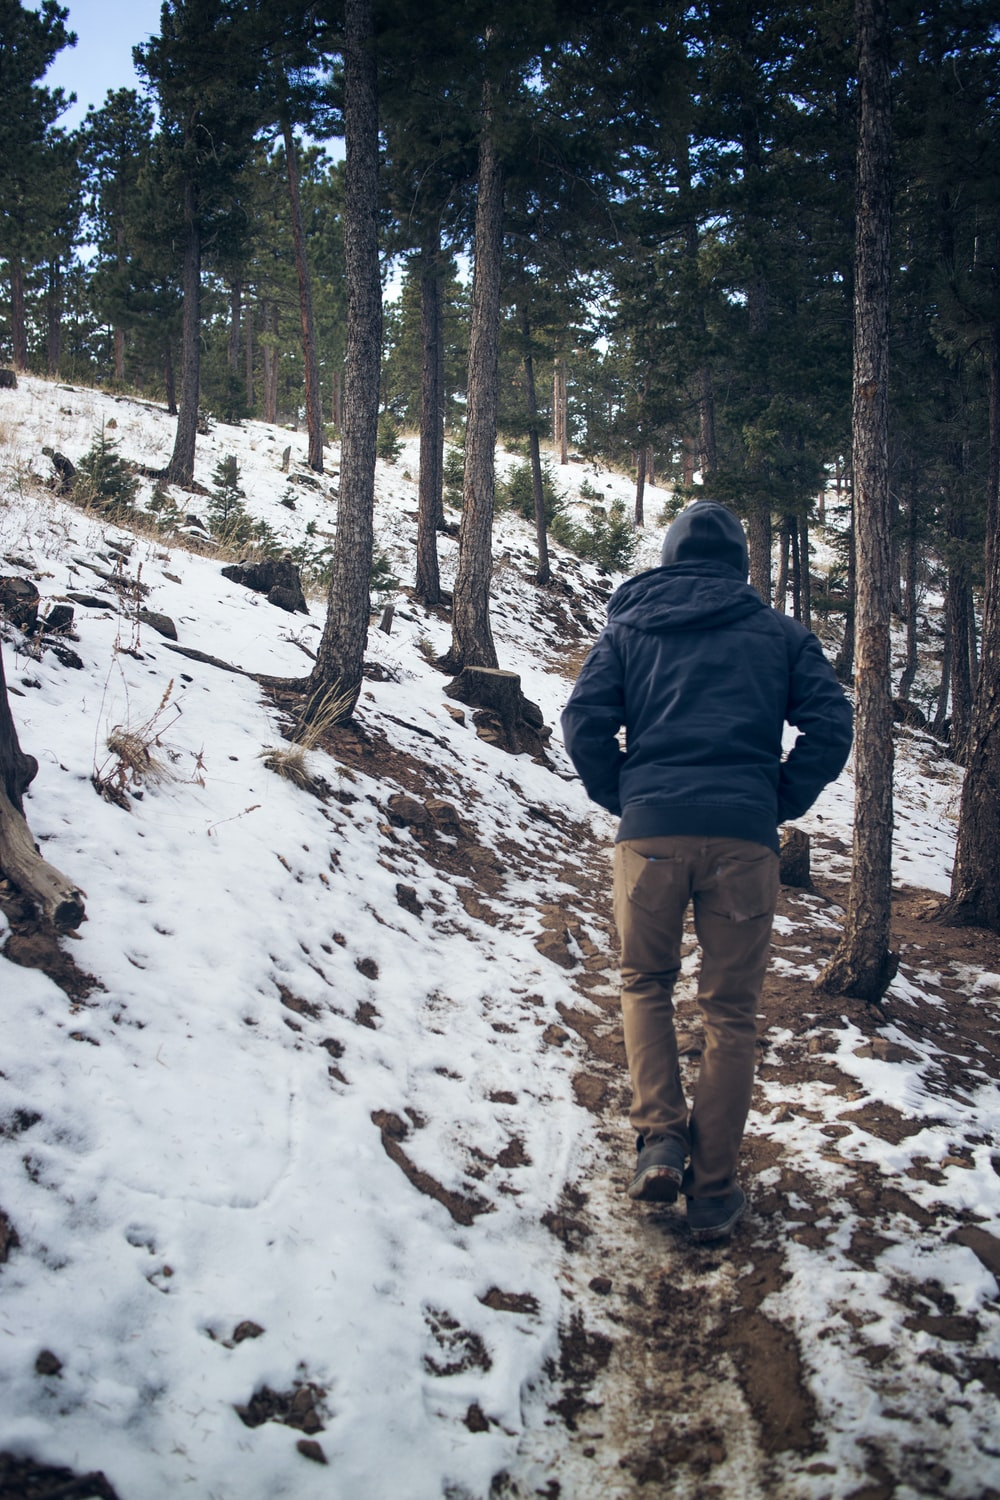 man wearing black hooded coat walking under trees with snow during winter